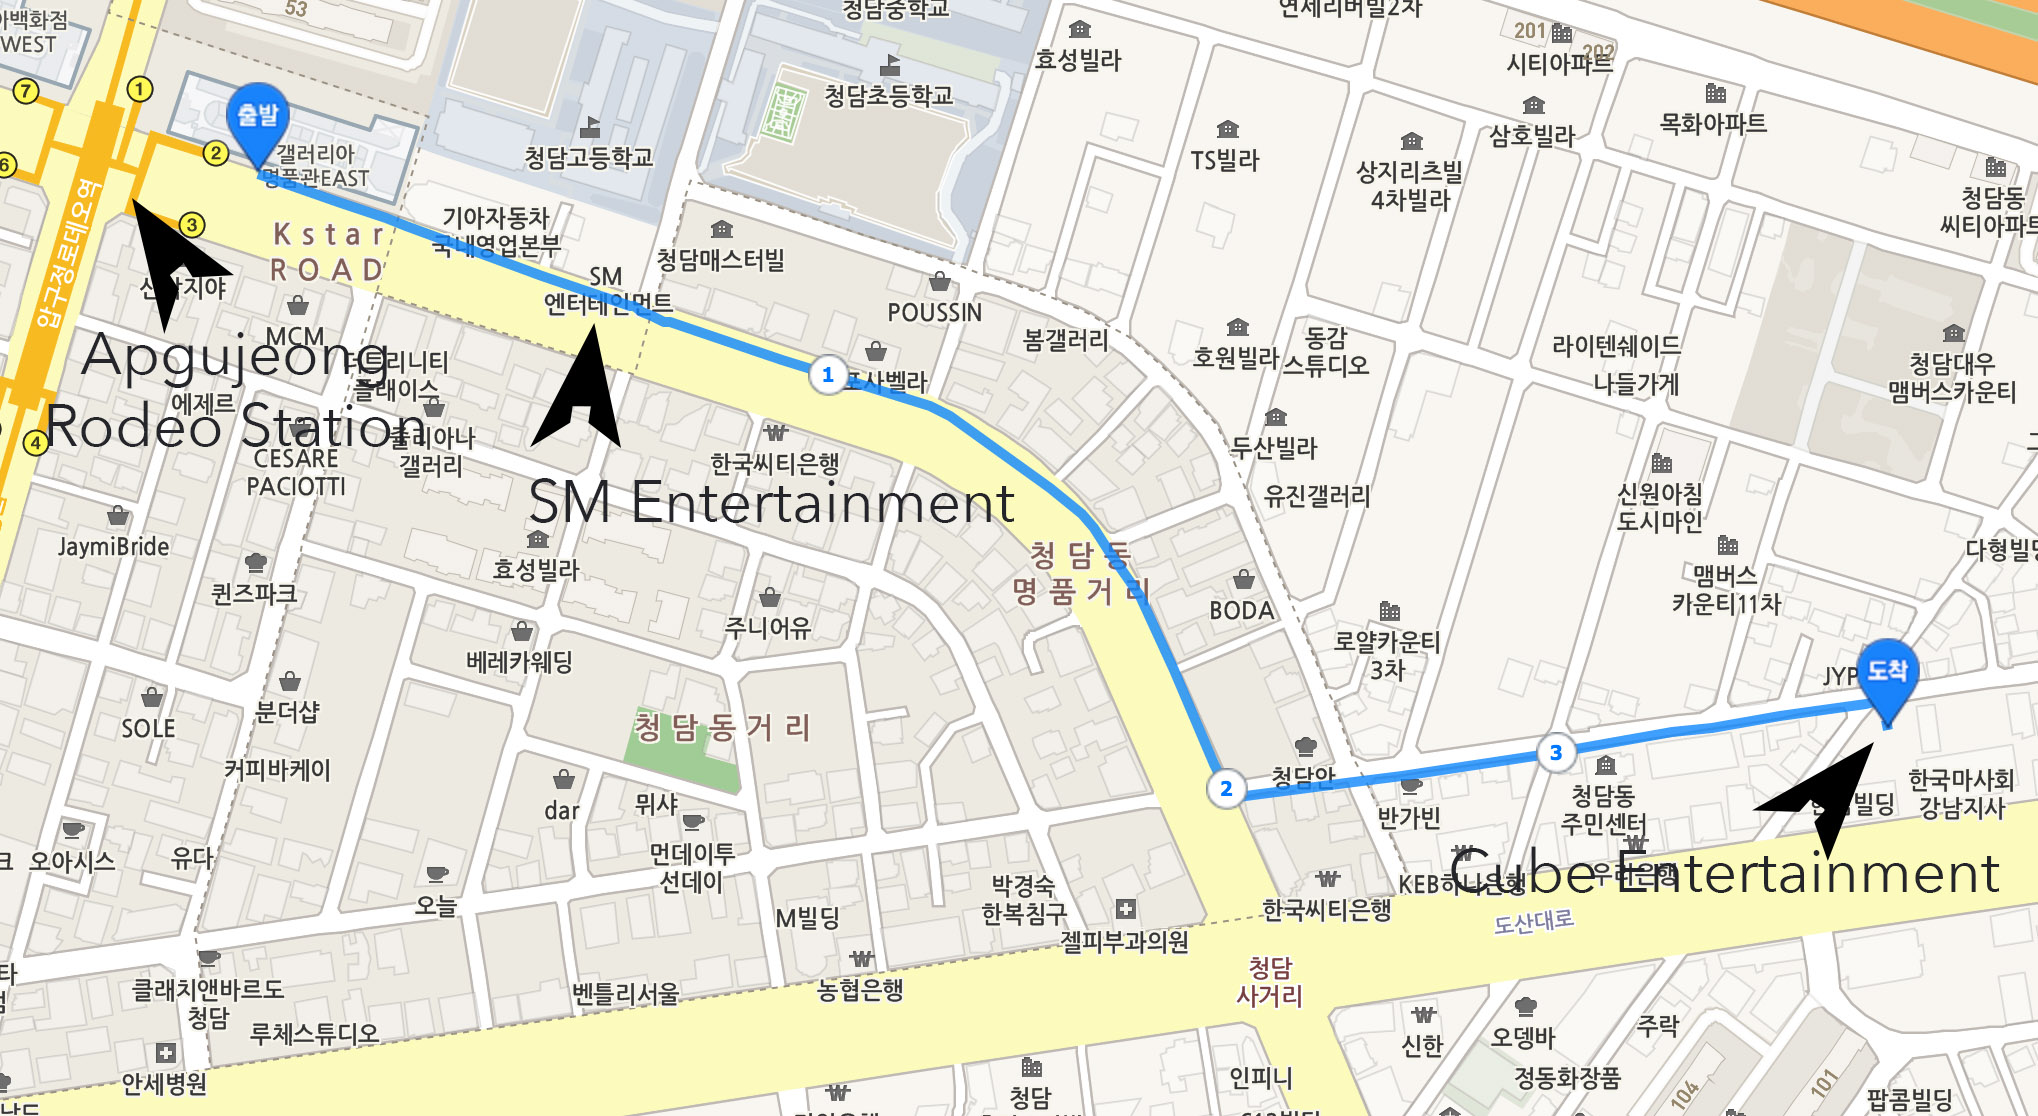 Directions to Cube